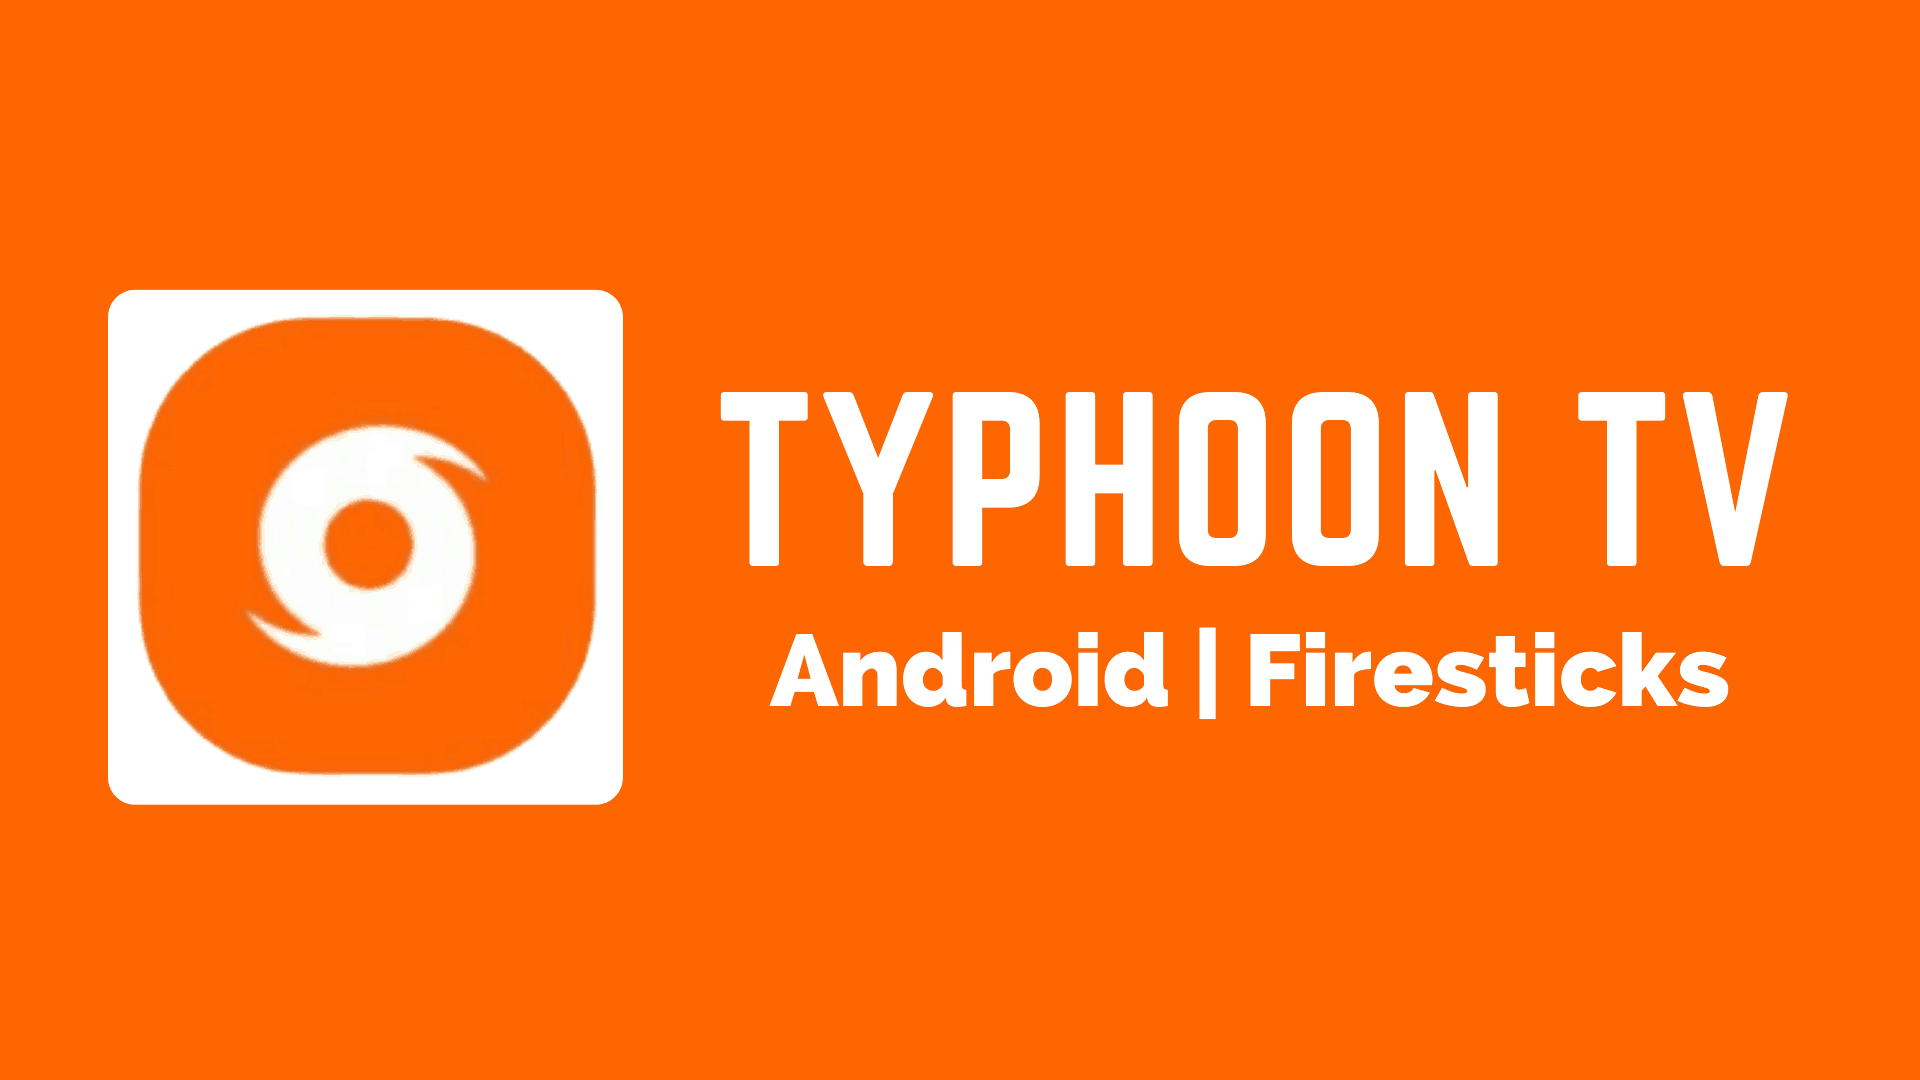 typhoon tv apk